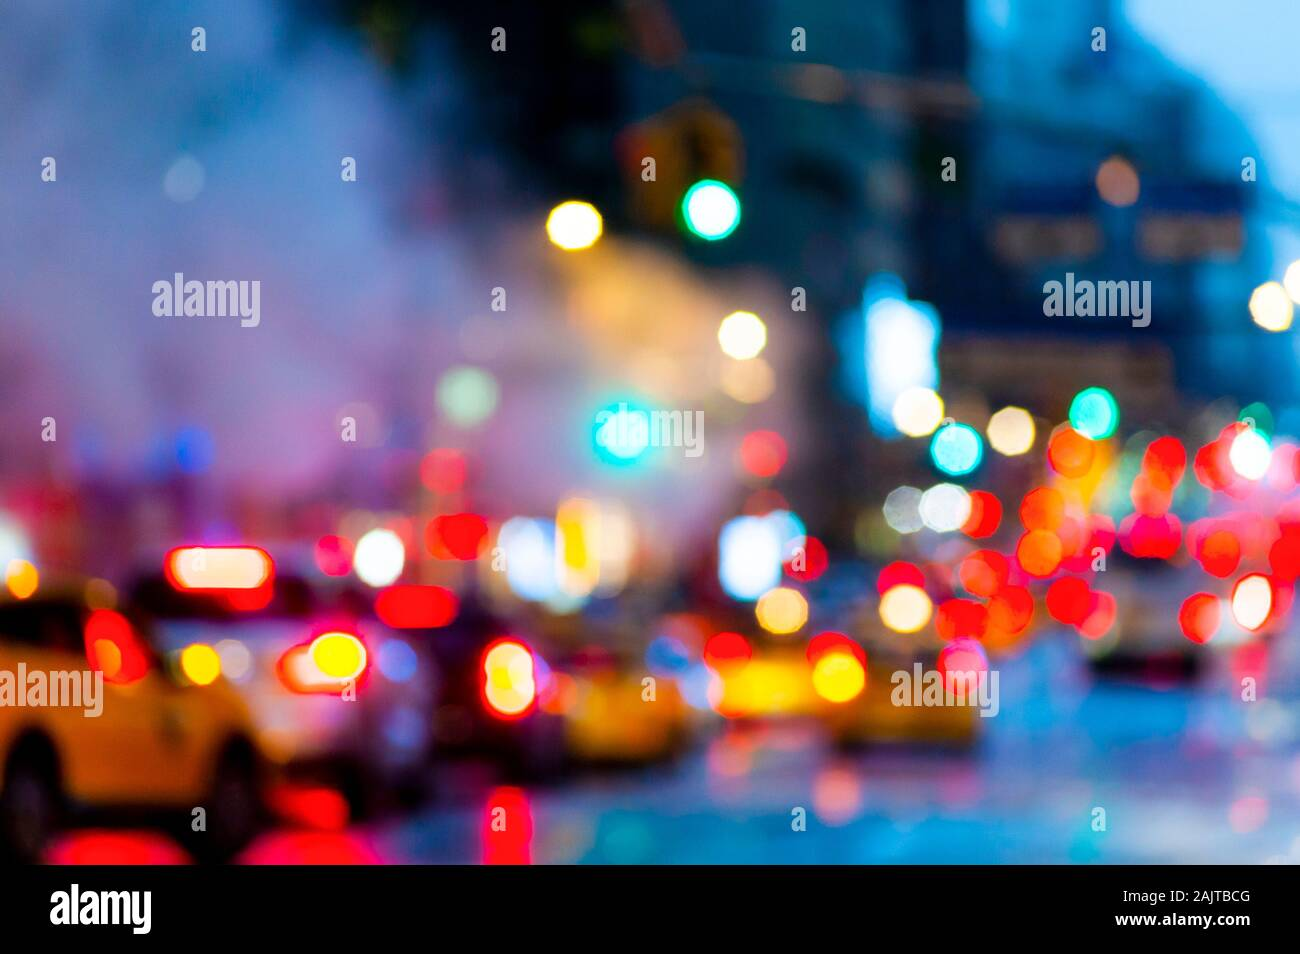 Abstract City Scene New York Banque D'Images